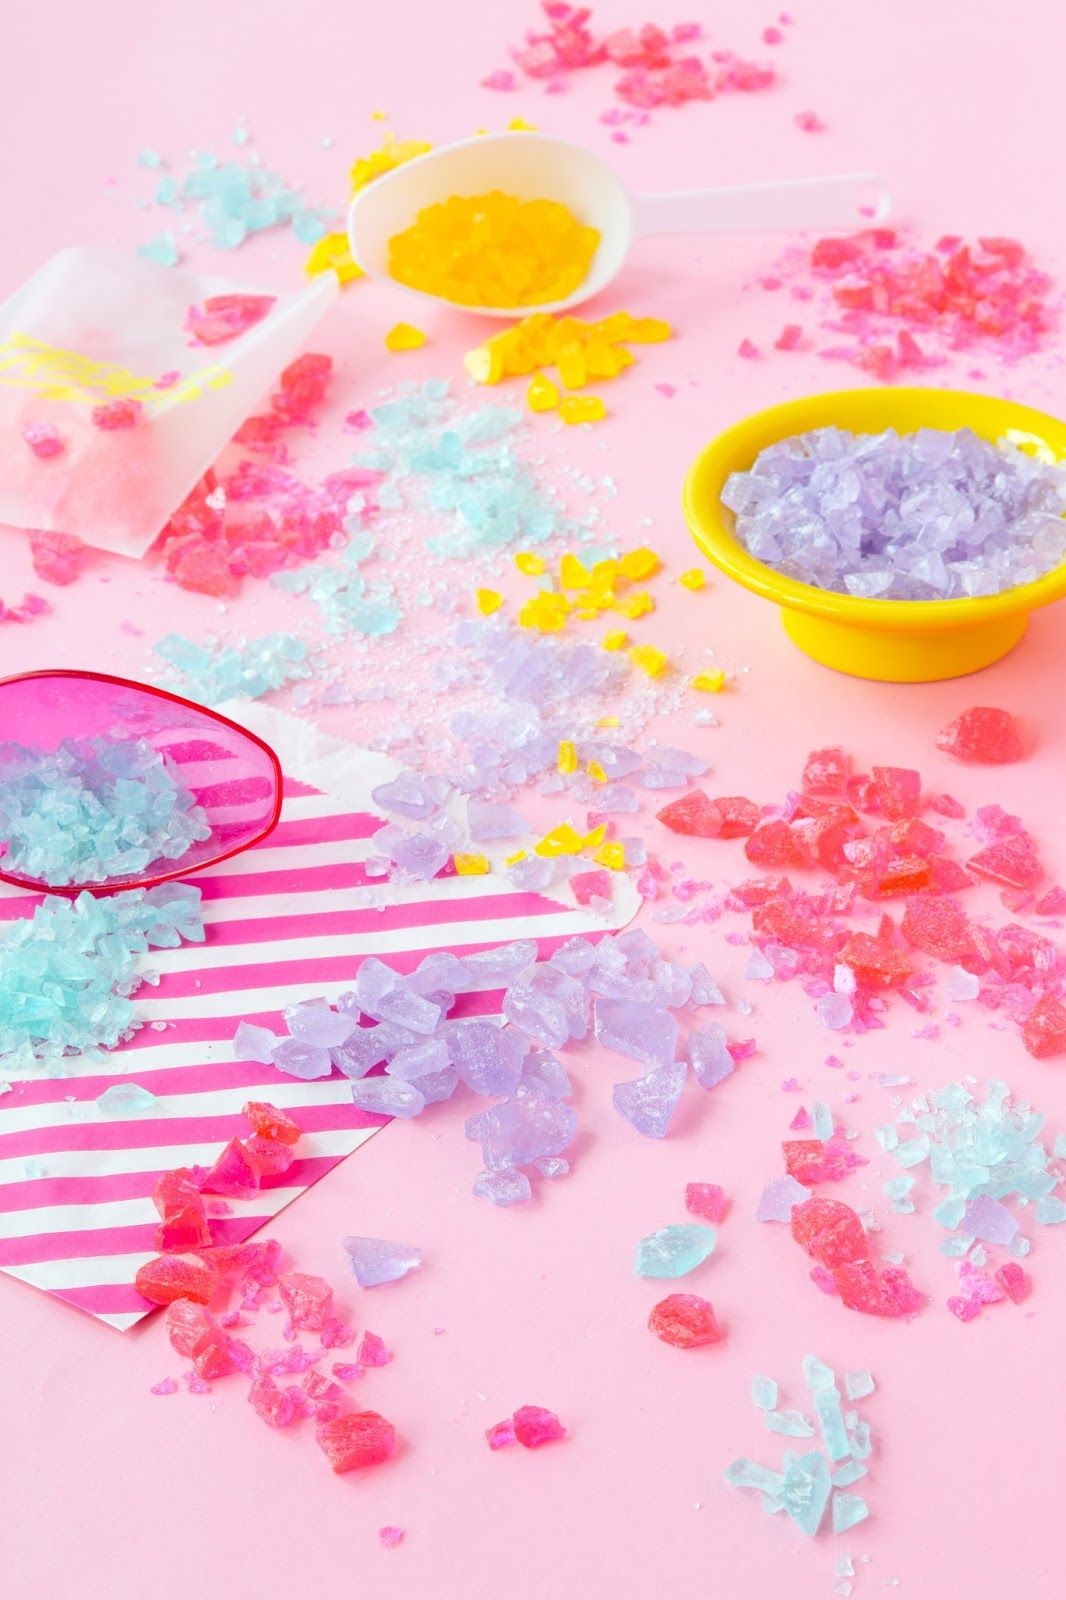 Diy Pop Rocks Candy Recipe Pop Rocks Candy Rock Candy Recipe Candy Recipes